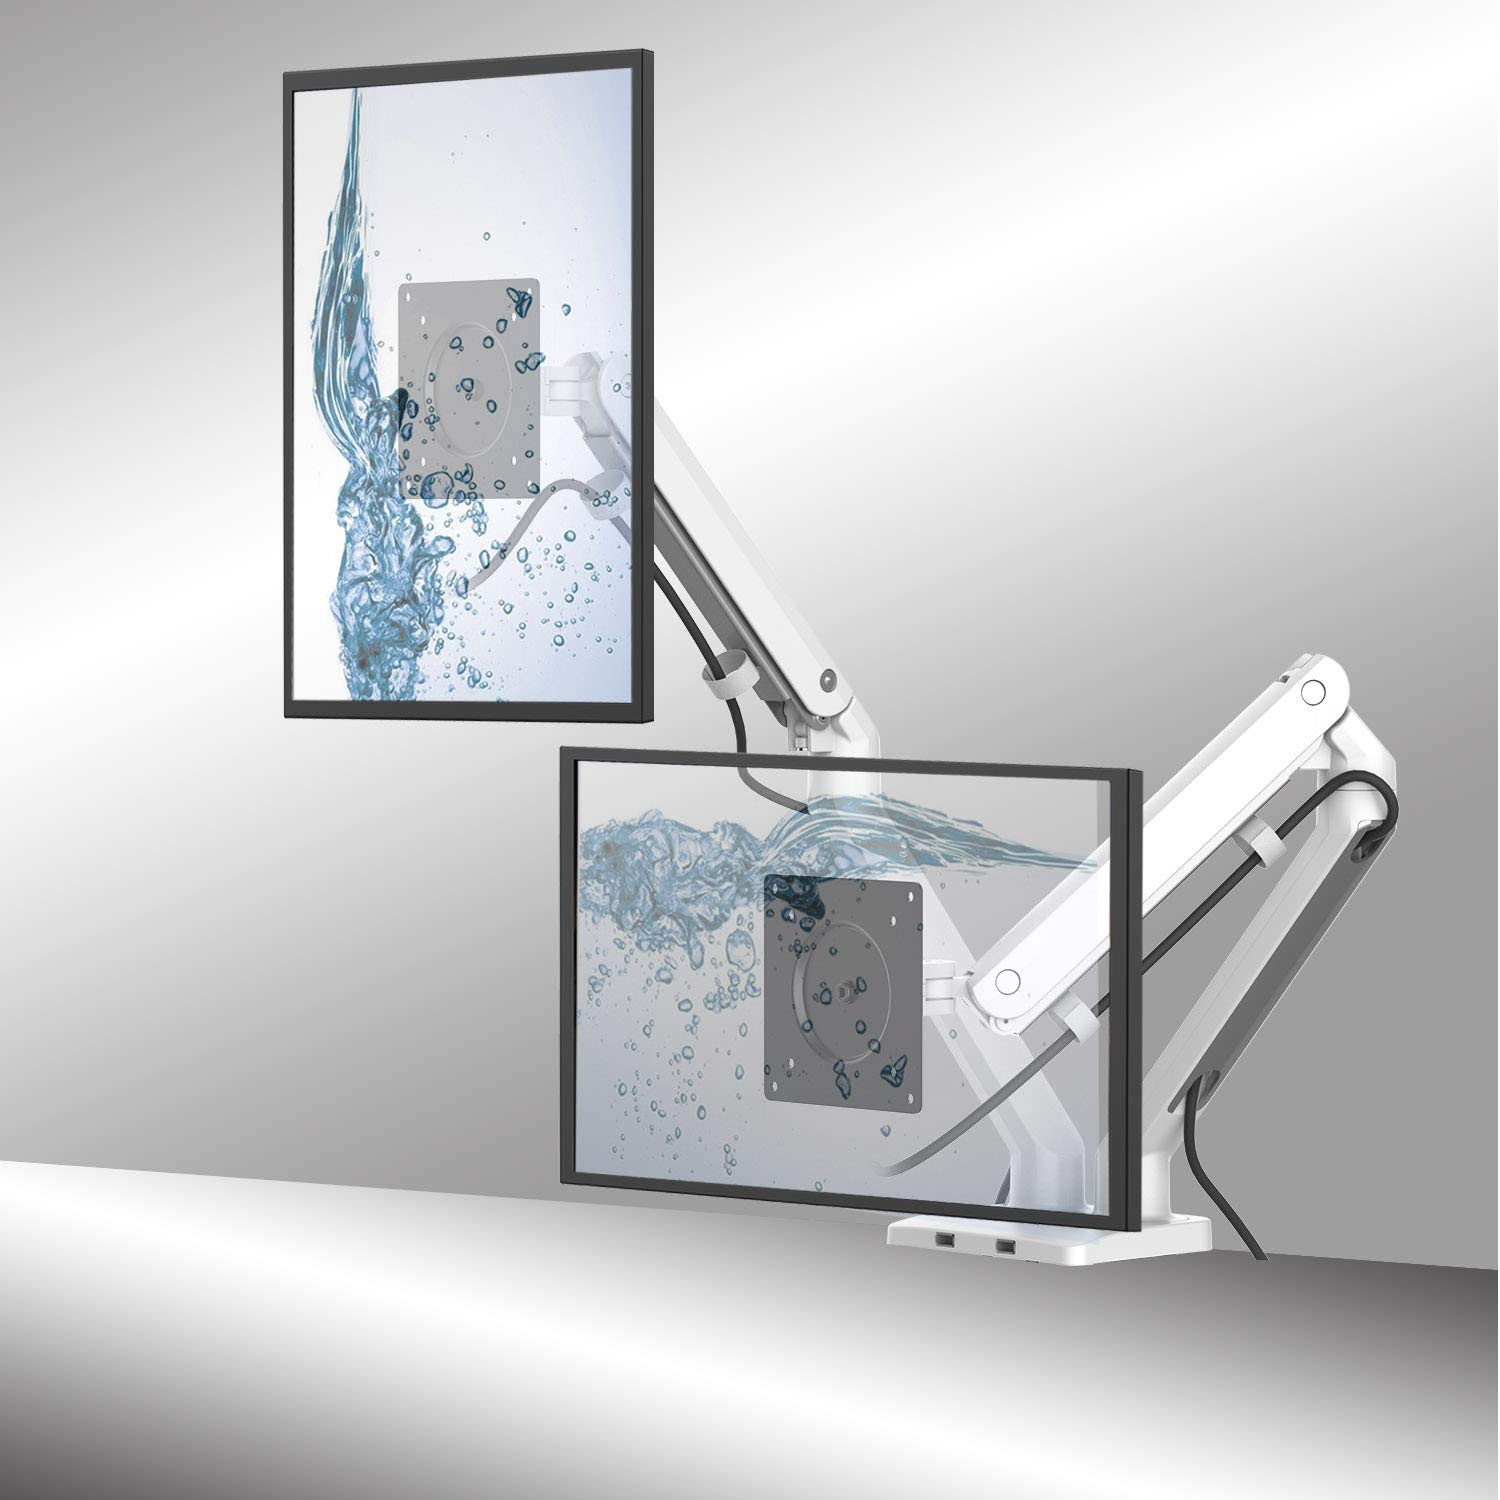 Dual LED LCD Monitor Desk Mount Stand